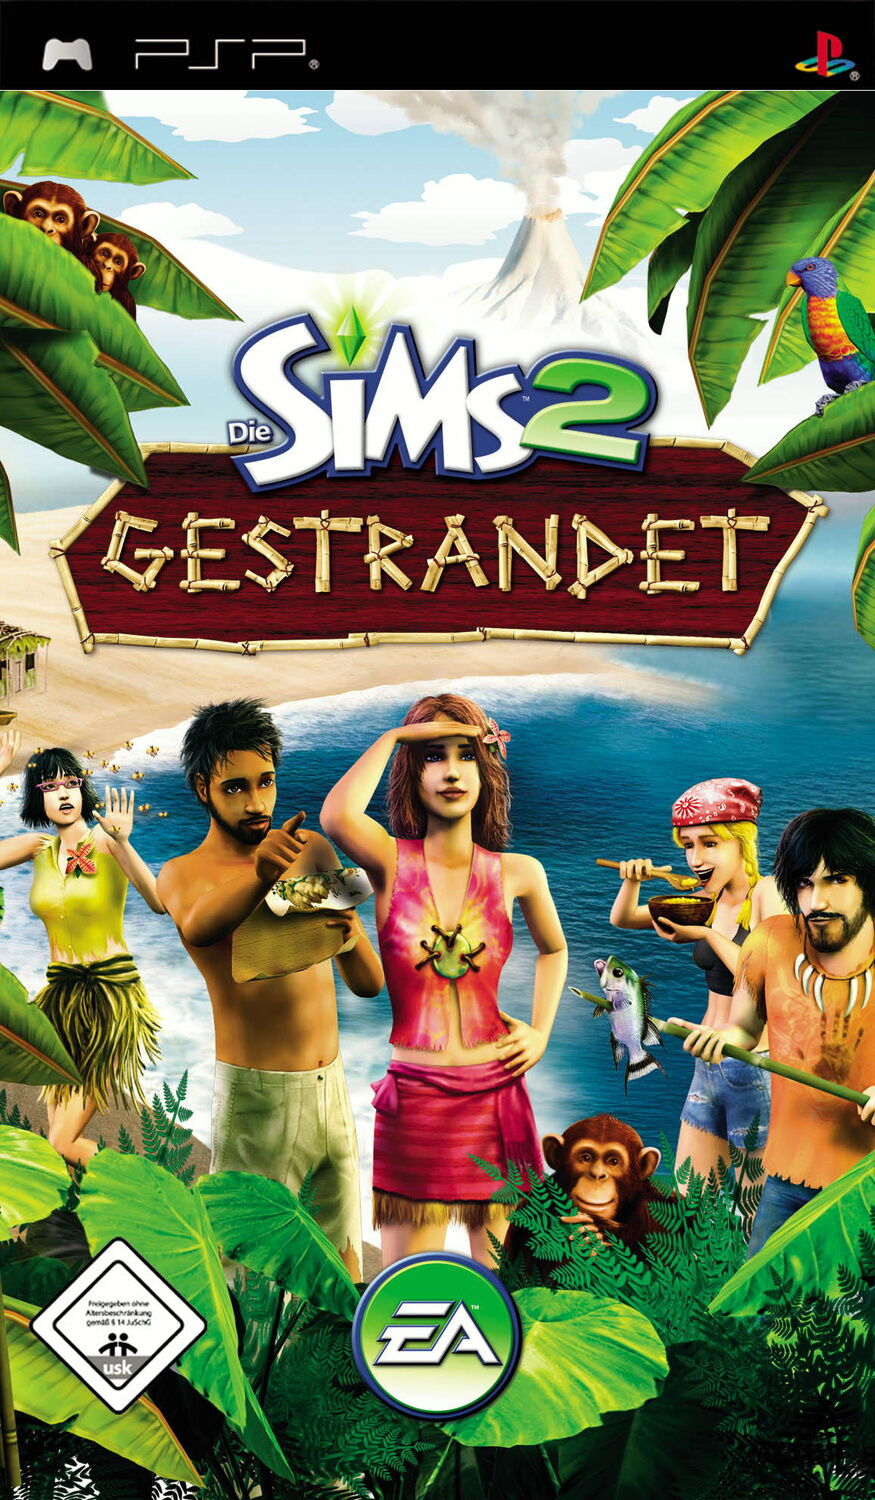 The sims castaway naked patch erotic movie